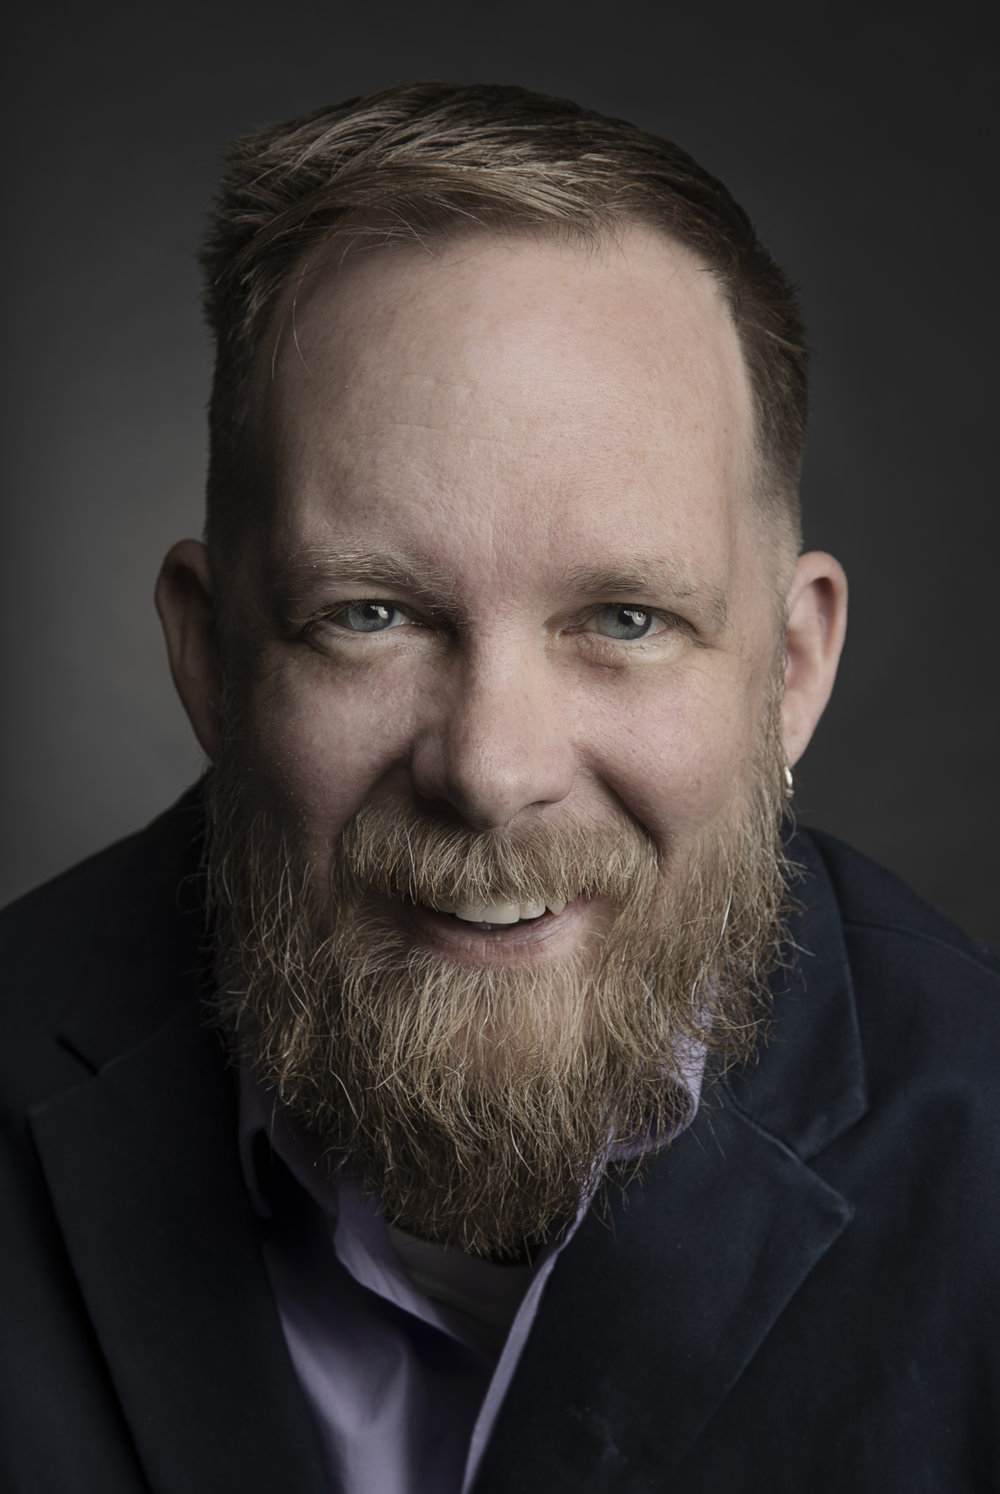 Thom Caraway teaches writing, editing, and publishing at Whitworth University, where he is also the editor of  Rock & Sling . His most recent collection of poems is  What the Sky Lacks  (2018). From 2013 through 2015, he was the poet laureate for Spokane. In September 2018, he embarked on a foolishly extensive kitchen remodel project, and he may never be finished.